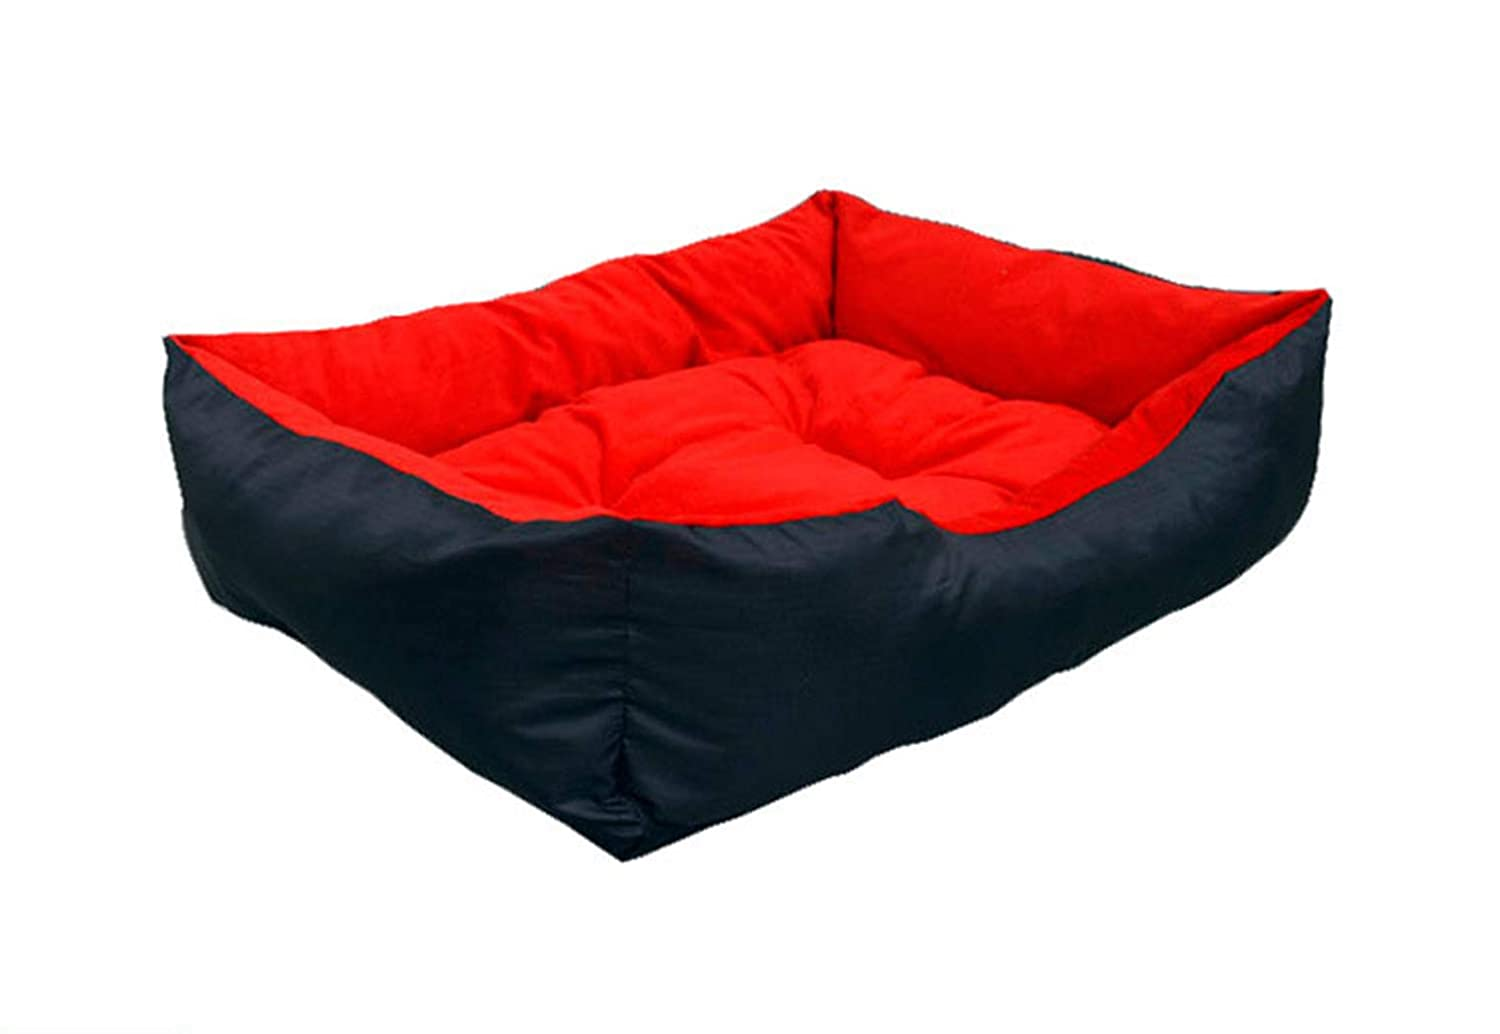 RED XL RED XL SENERY Pet Dog Bed Sofa Mat House, Large Breed lanket Cushion Basket Supplies Bed for Cat Puppy Dog